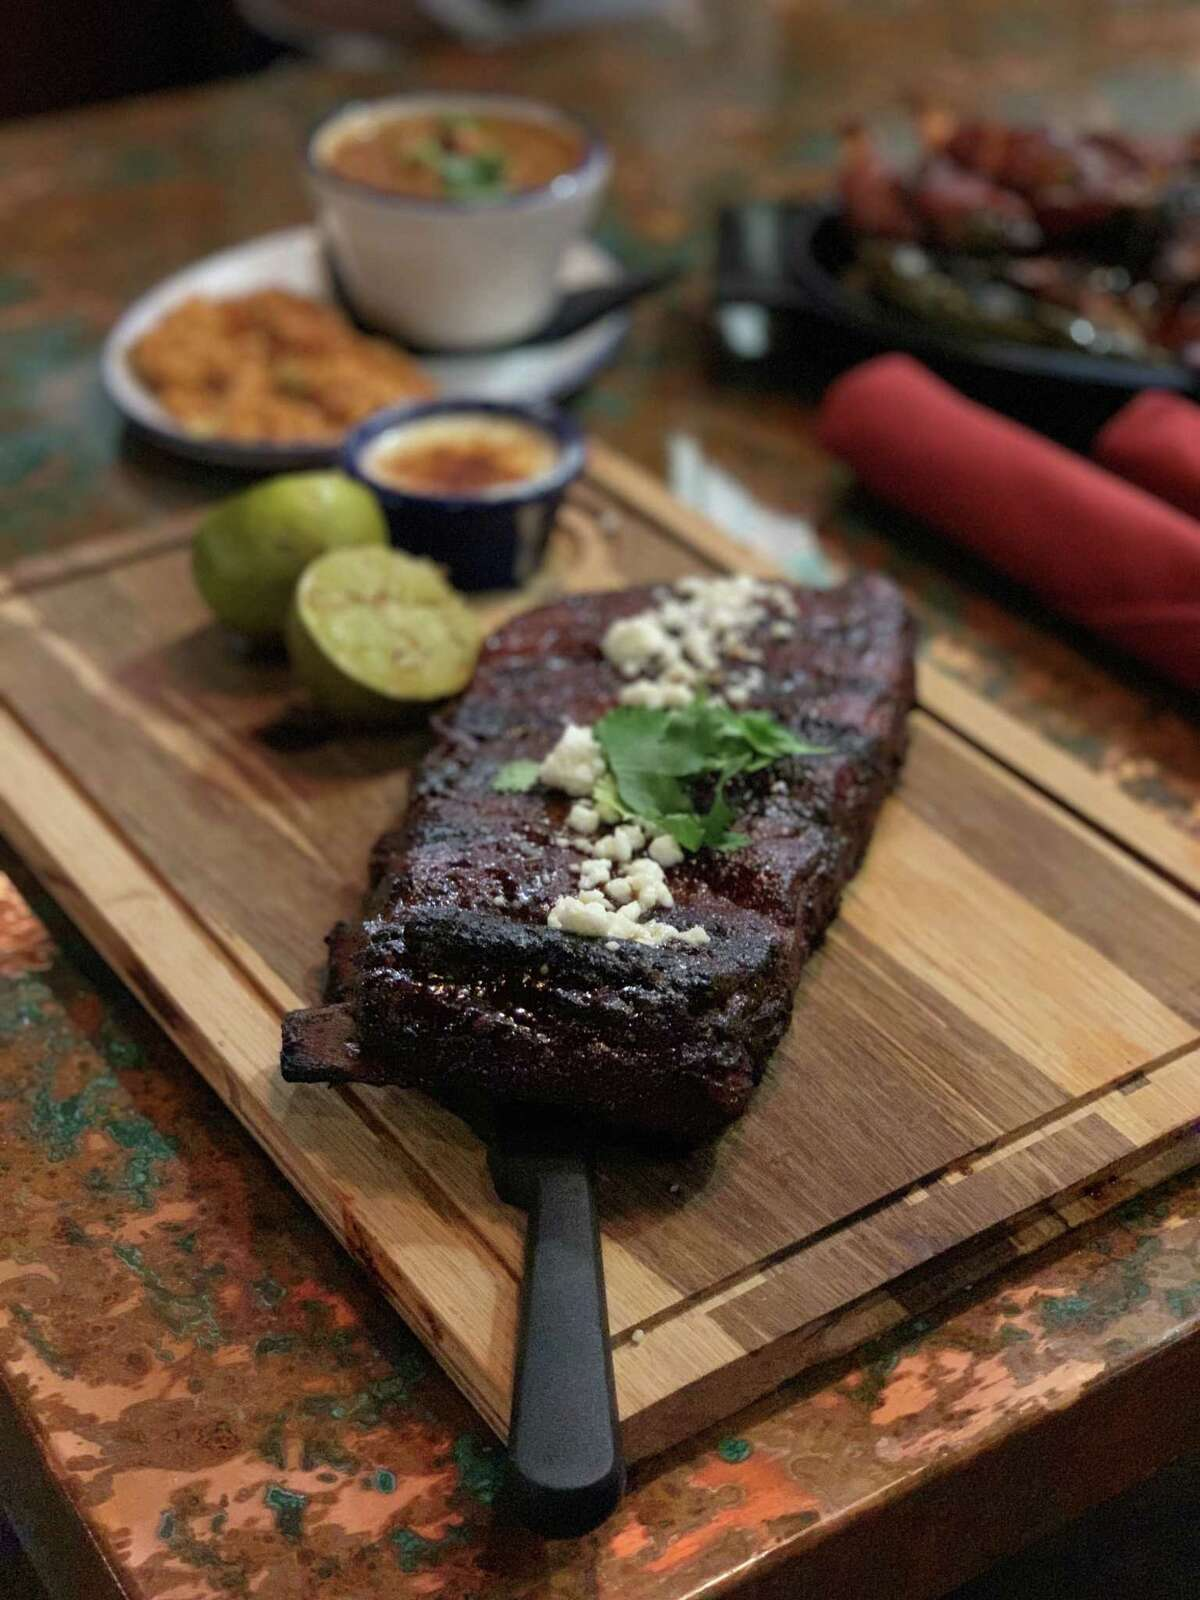 Candente, a new Tex-Mex restaurant with smoked and live-fire meats, is opening Sept. 16 at 4306 Yoakum in Montrose. Shown: smoked pork ribs.